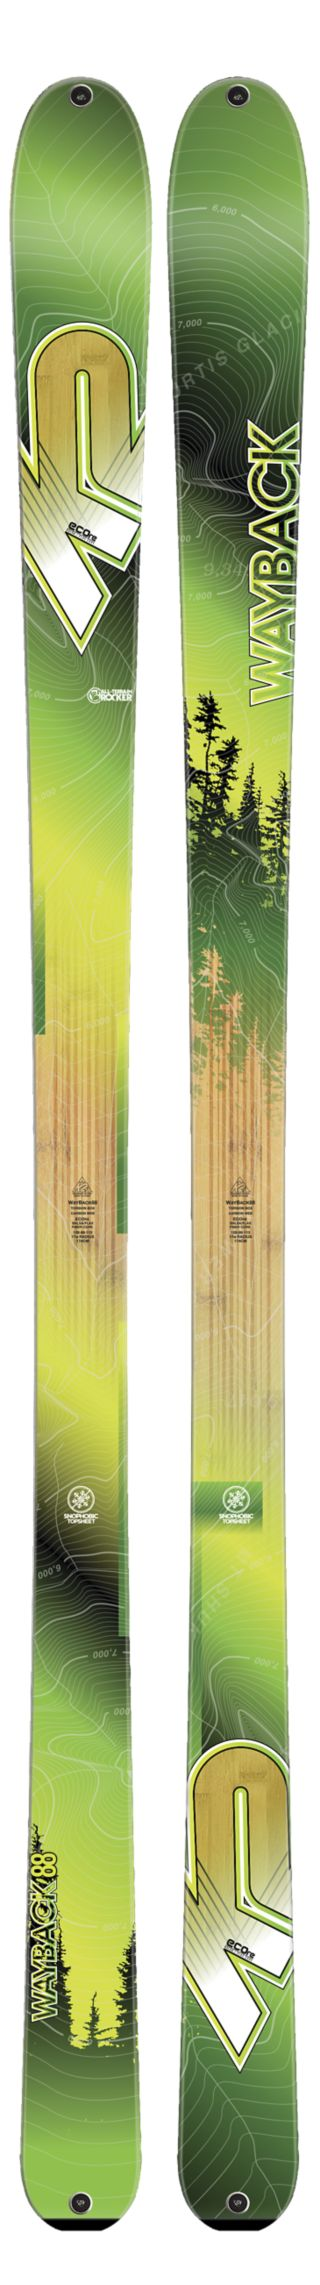 K2 Skis - WayBack 88 Ski